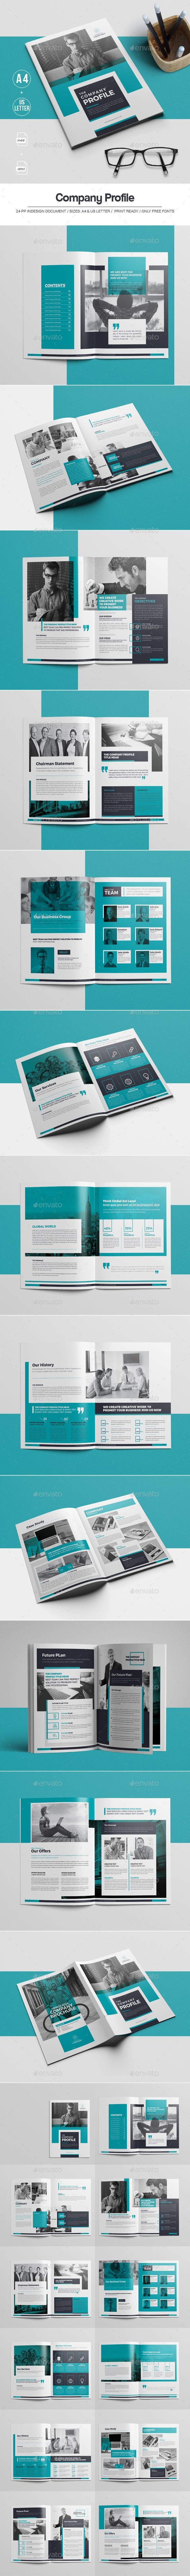 Company Profile Brochure Template InDesign INDD - 24 Custom Pages ...